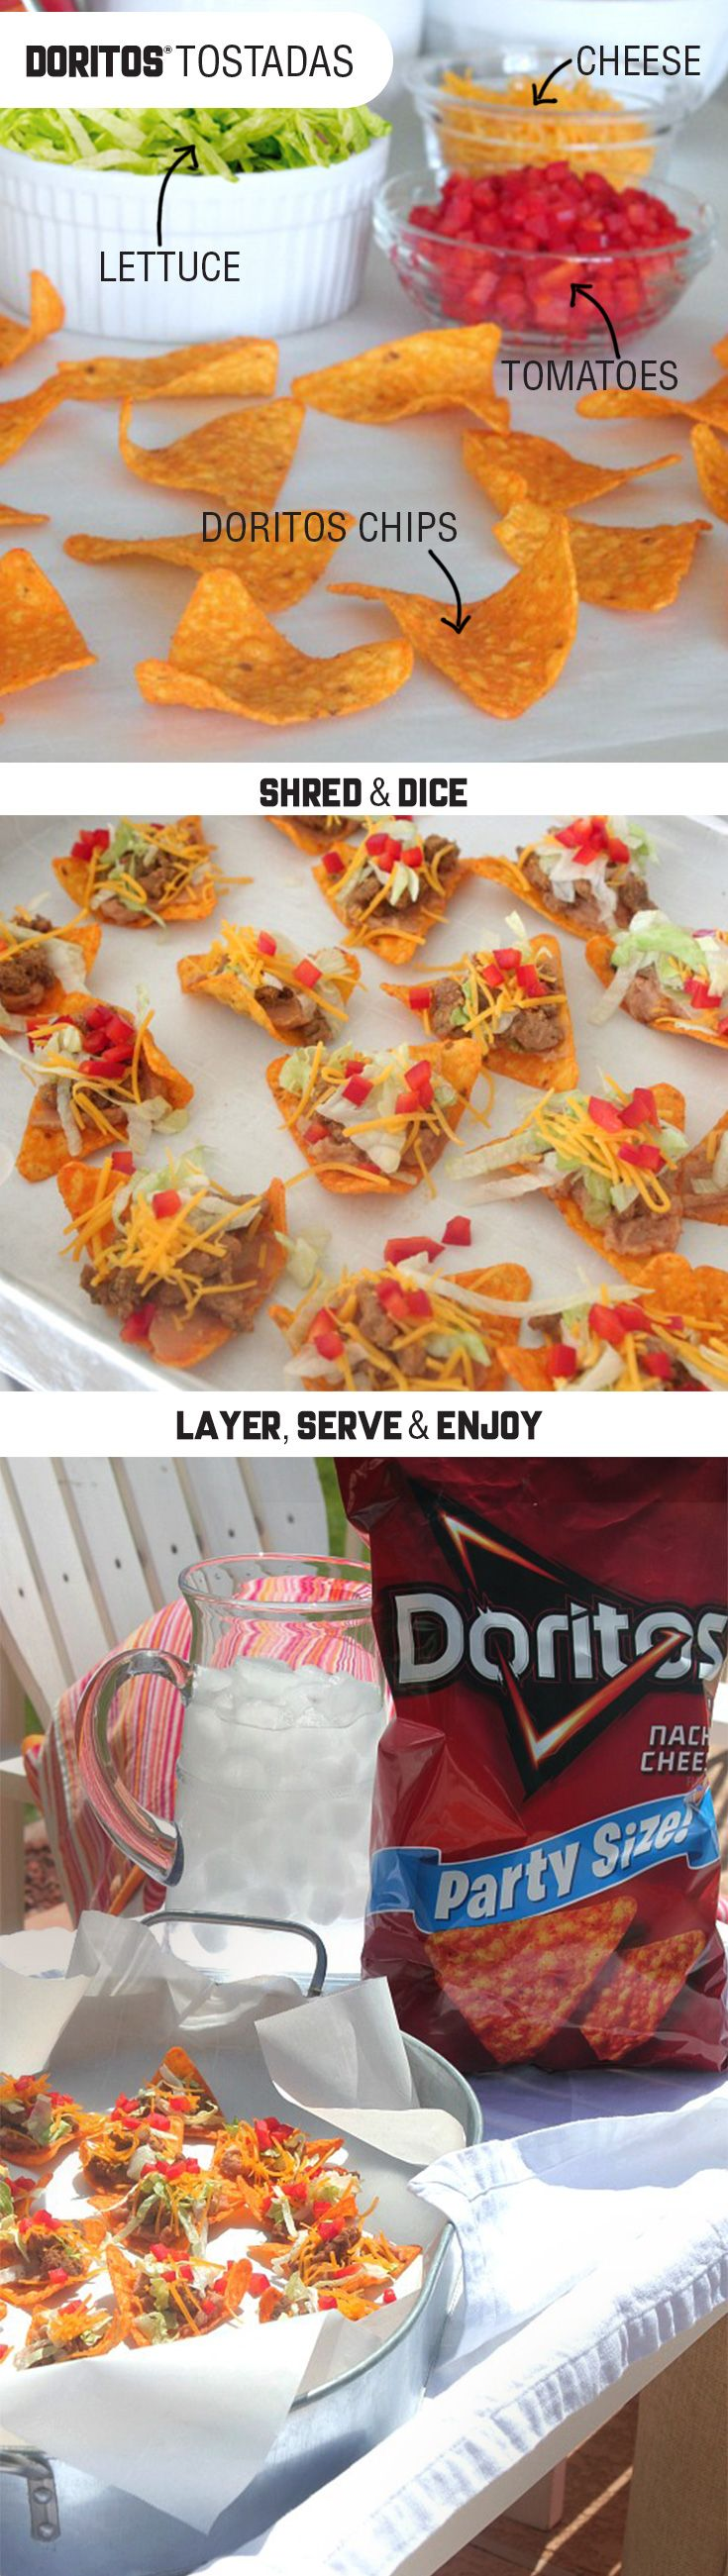 Sponsored by Frito-Lay | A little crunch can turn up the fun and flavor at any summer party. Try these Doritos® Tostadas for an irresistibly zesty and easy-to-make snack, layered with beans, ground beef, cheese, and veggies. Grab some friends and grab your other favorite Frito-Lay products® and you're good to go all summer long!